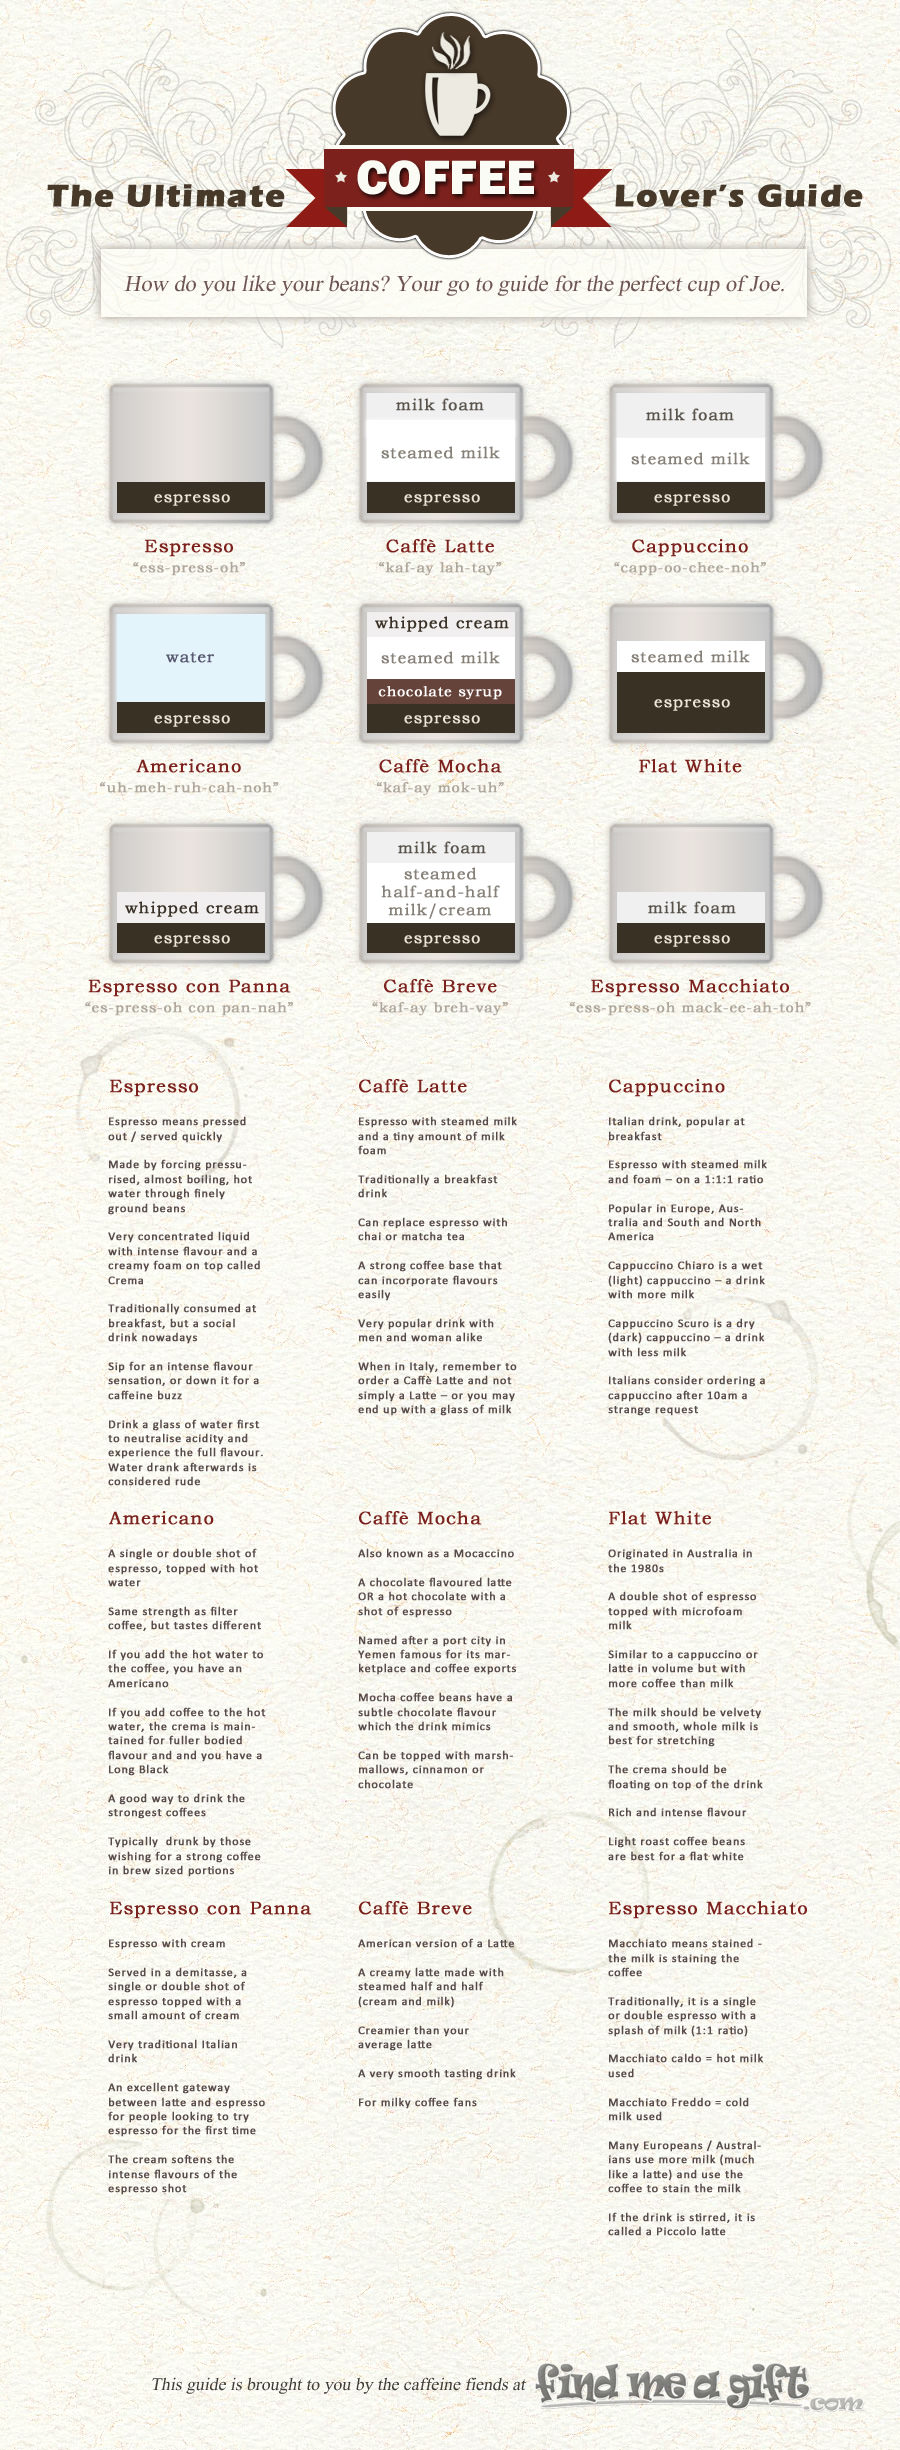 The Ultimate Coffee Lover's Guide